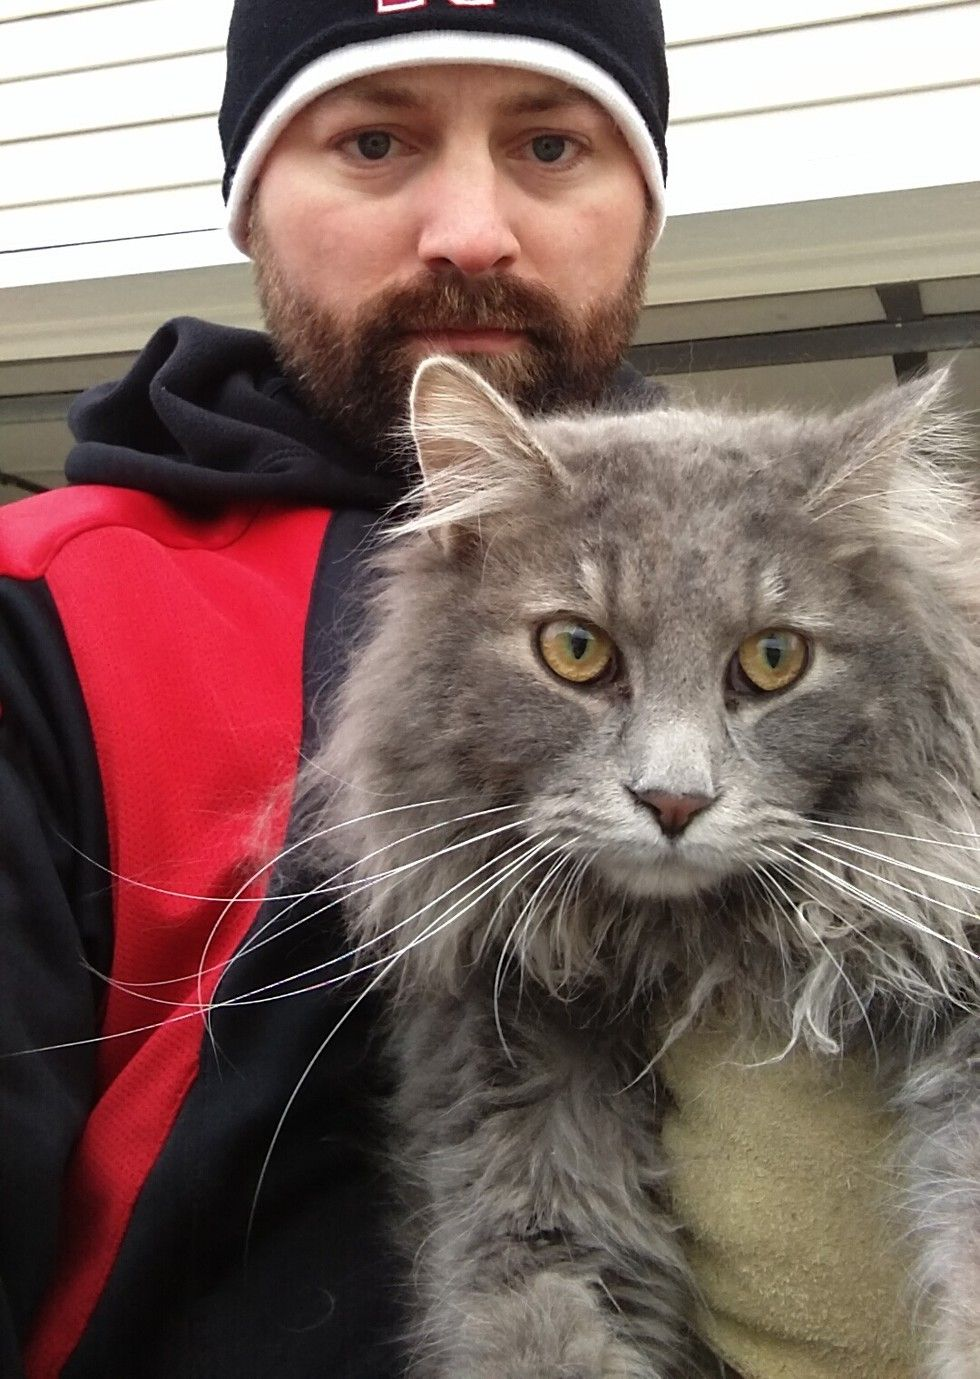 man saves cat from his car reunites him with family